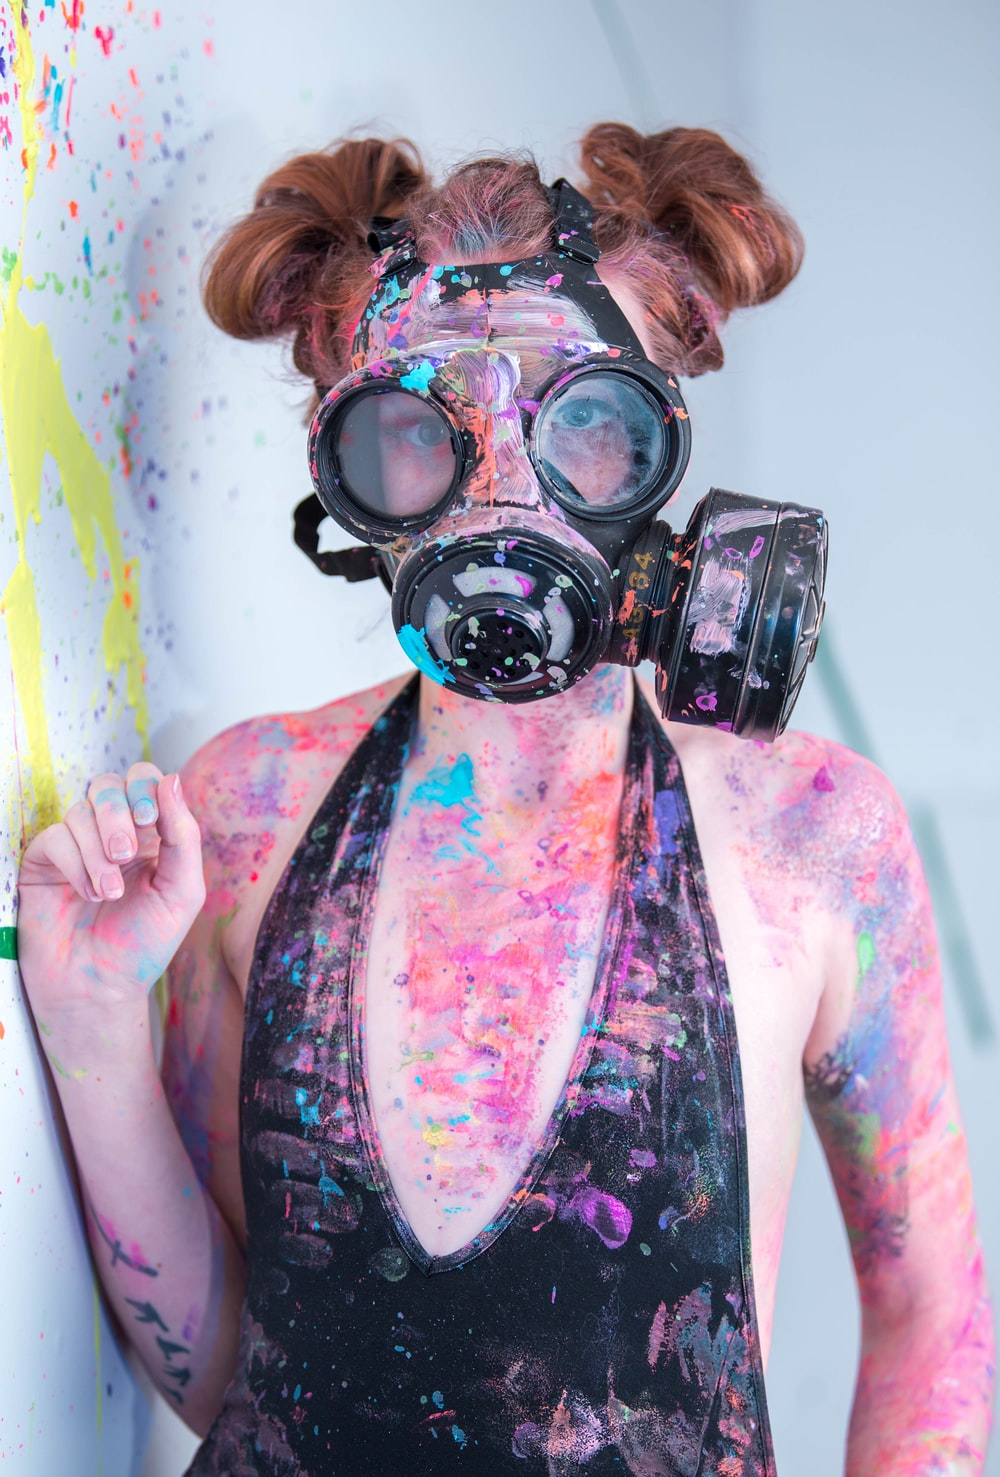 multicolored paint splattered woman wearing black monokini and gas mask standing beside wall